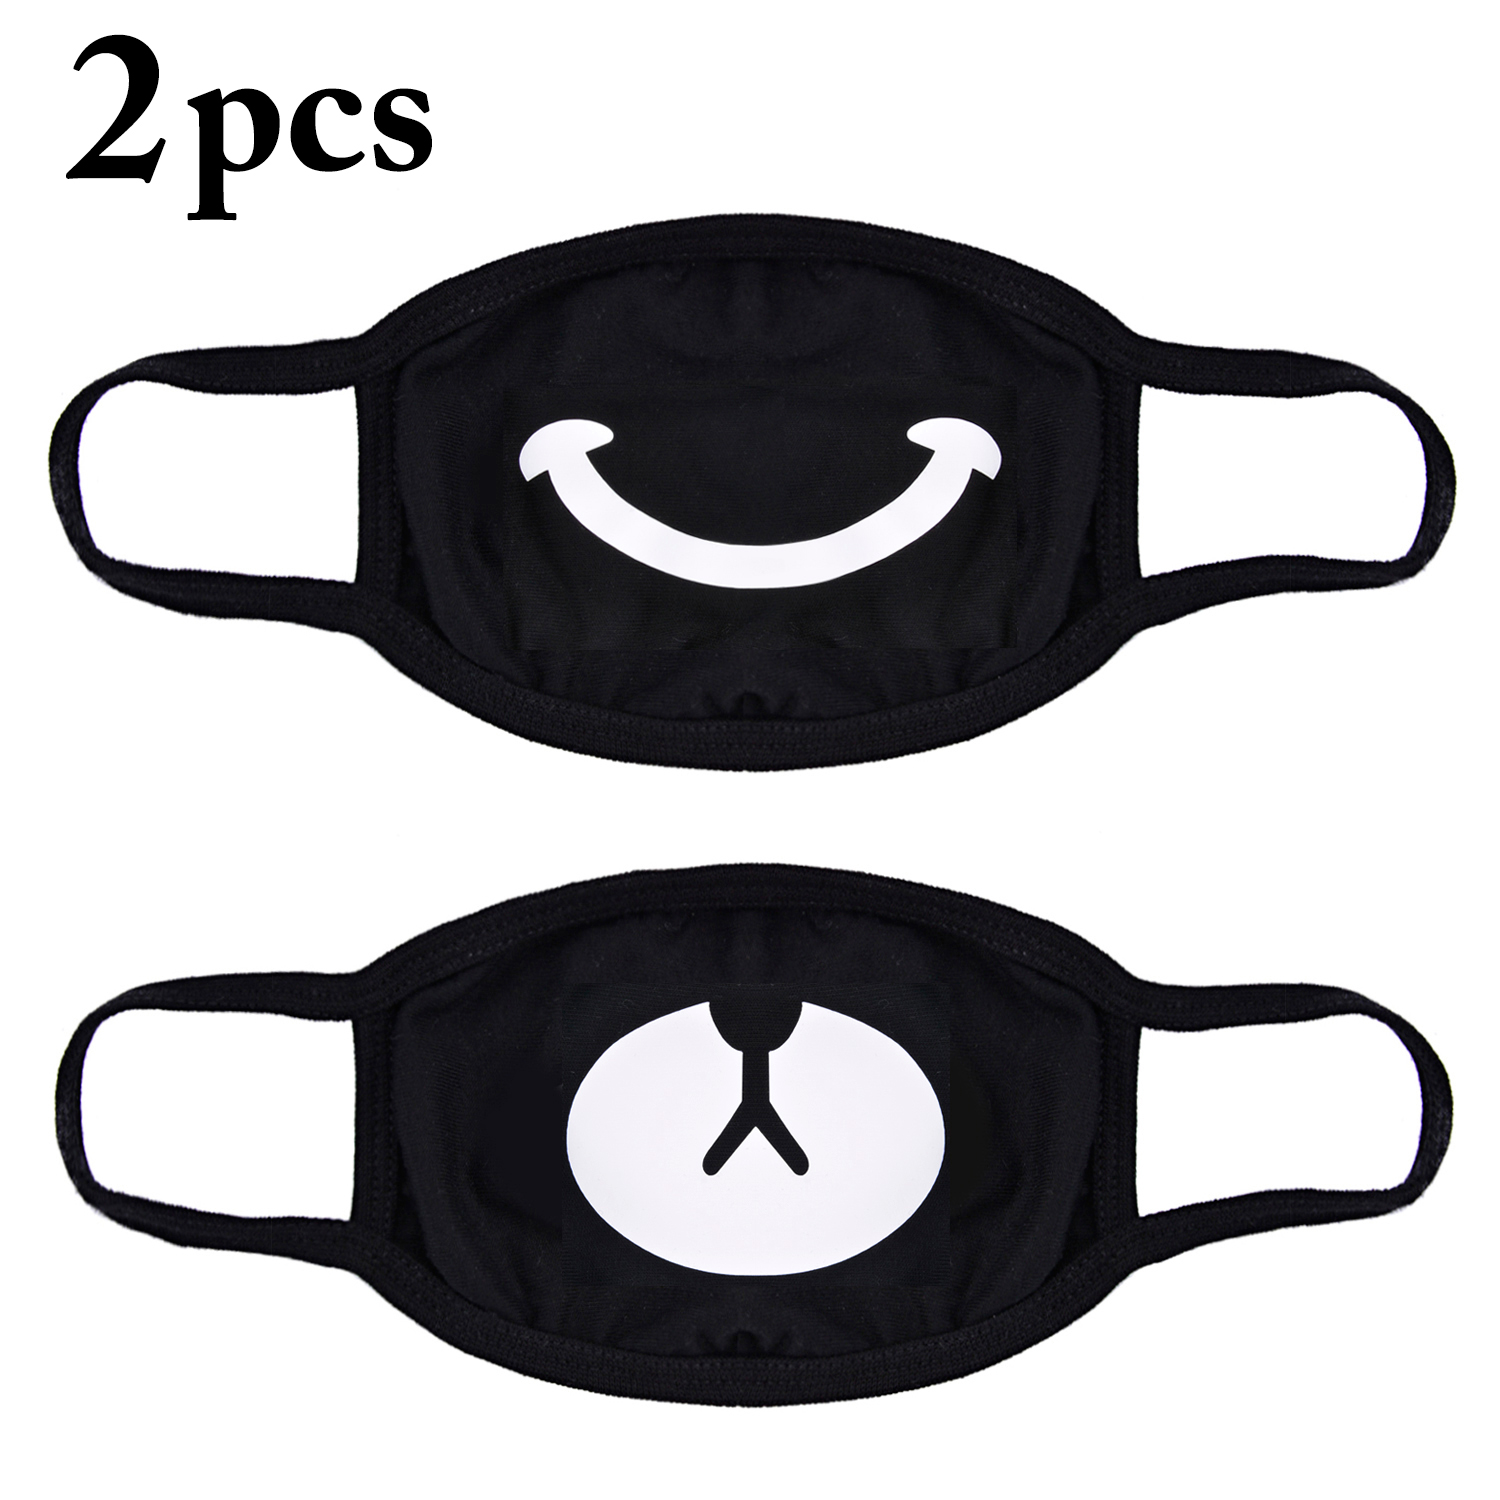 2 Pack Cartoon Half Face Cover Unisex Cotton Mask Anti-Dust Protective Earloop Mouth Mask With Smile Bear Pattern